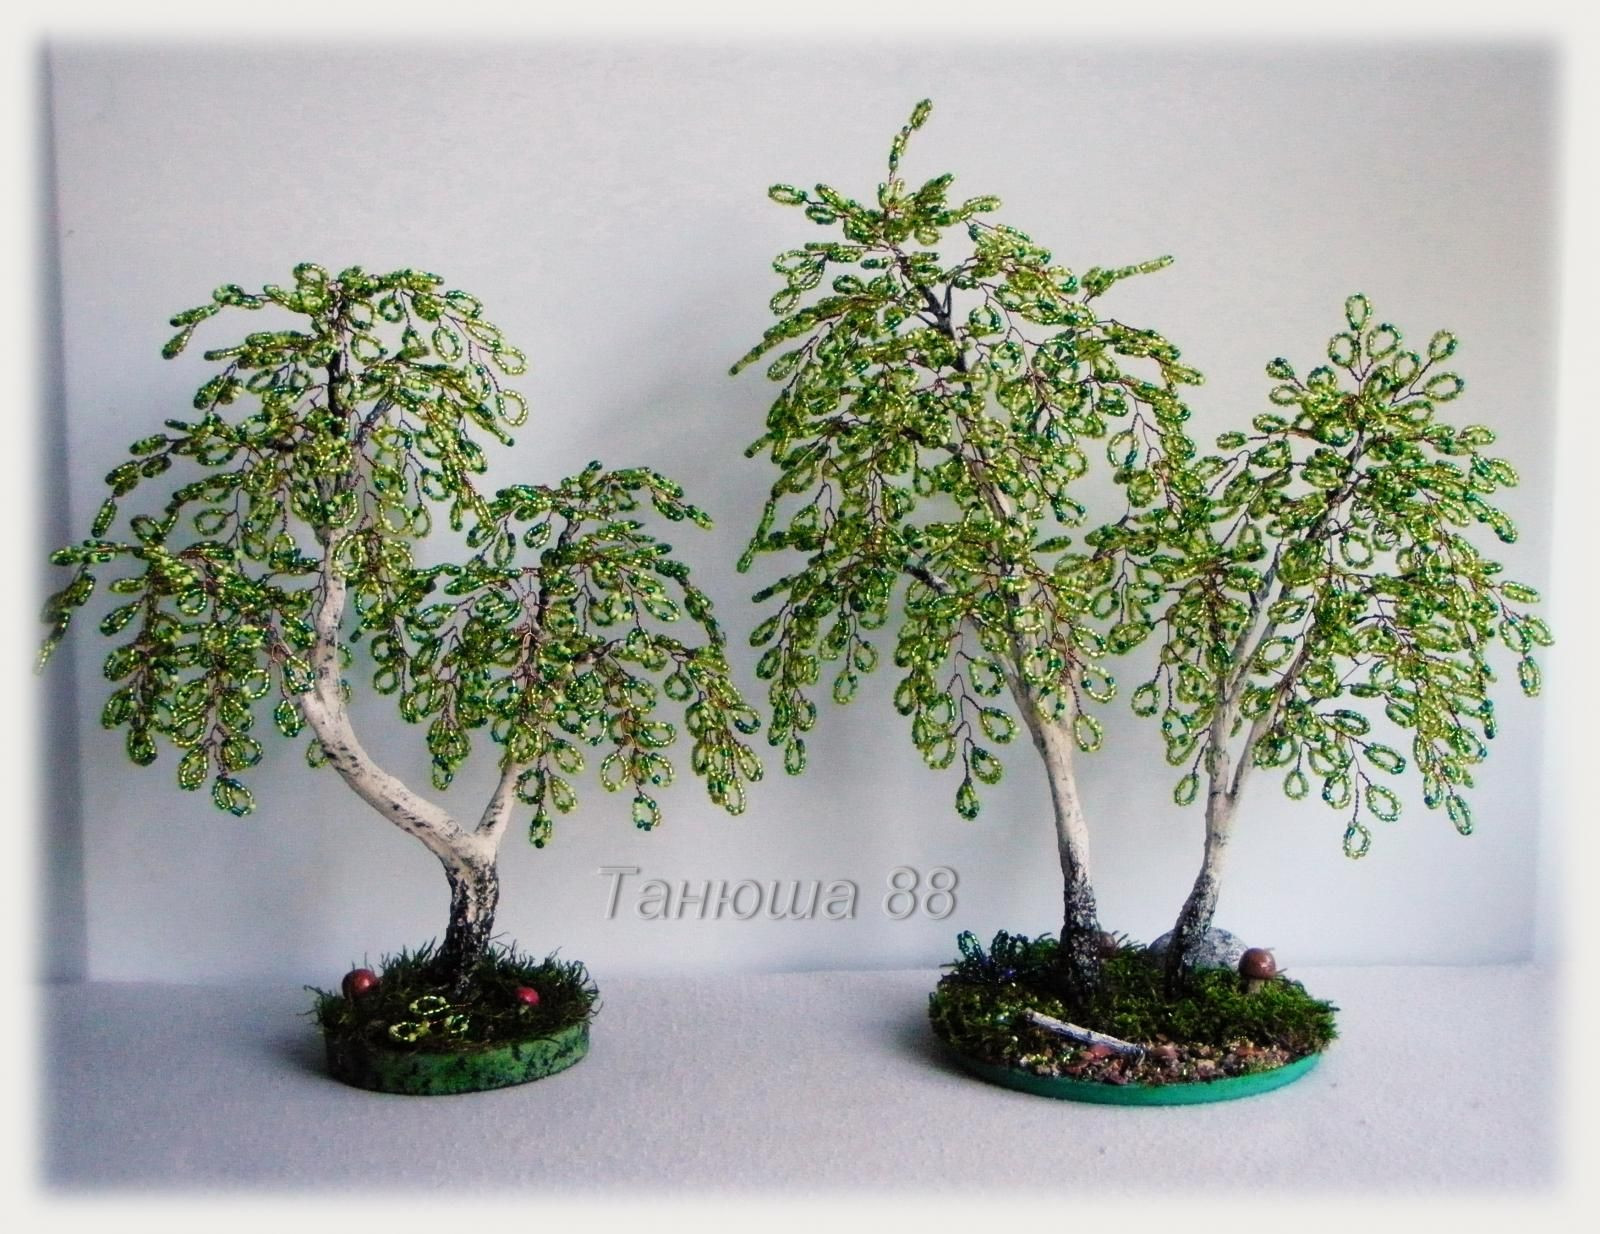 25 Wonderful Bonsai Tree Vase 2021 free download bonsai tree vase of http biser info files images biser info 42185 berezonki 3 regarding http biser info files images biser info 42185 berezonki